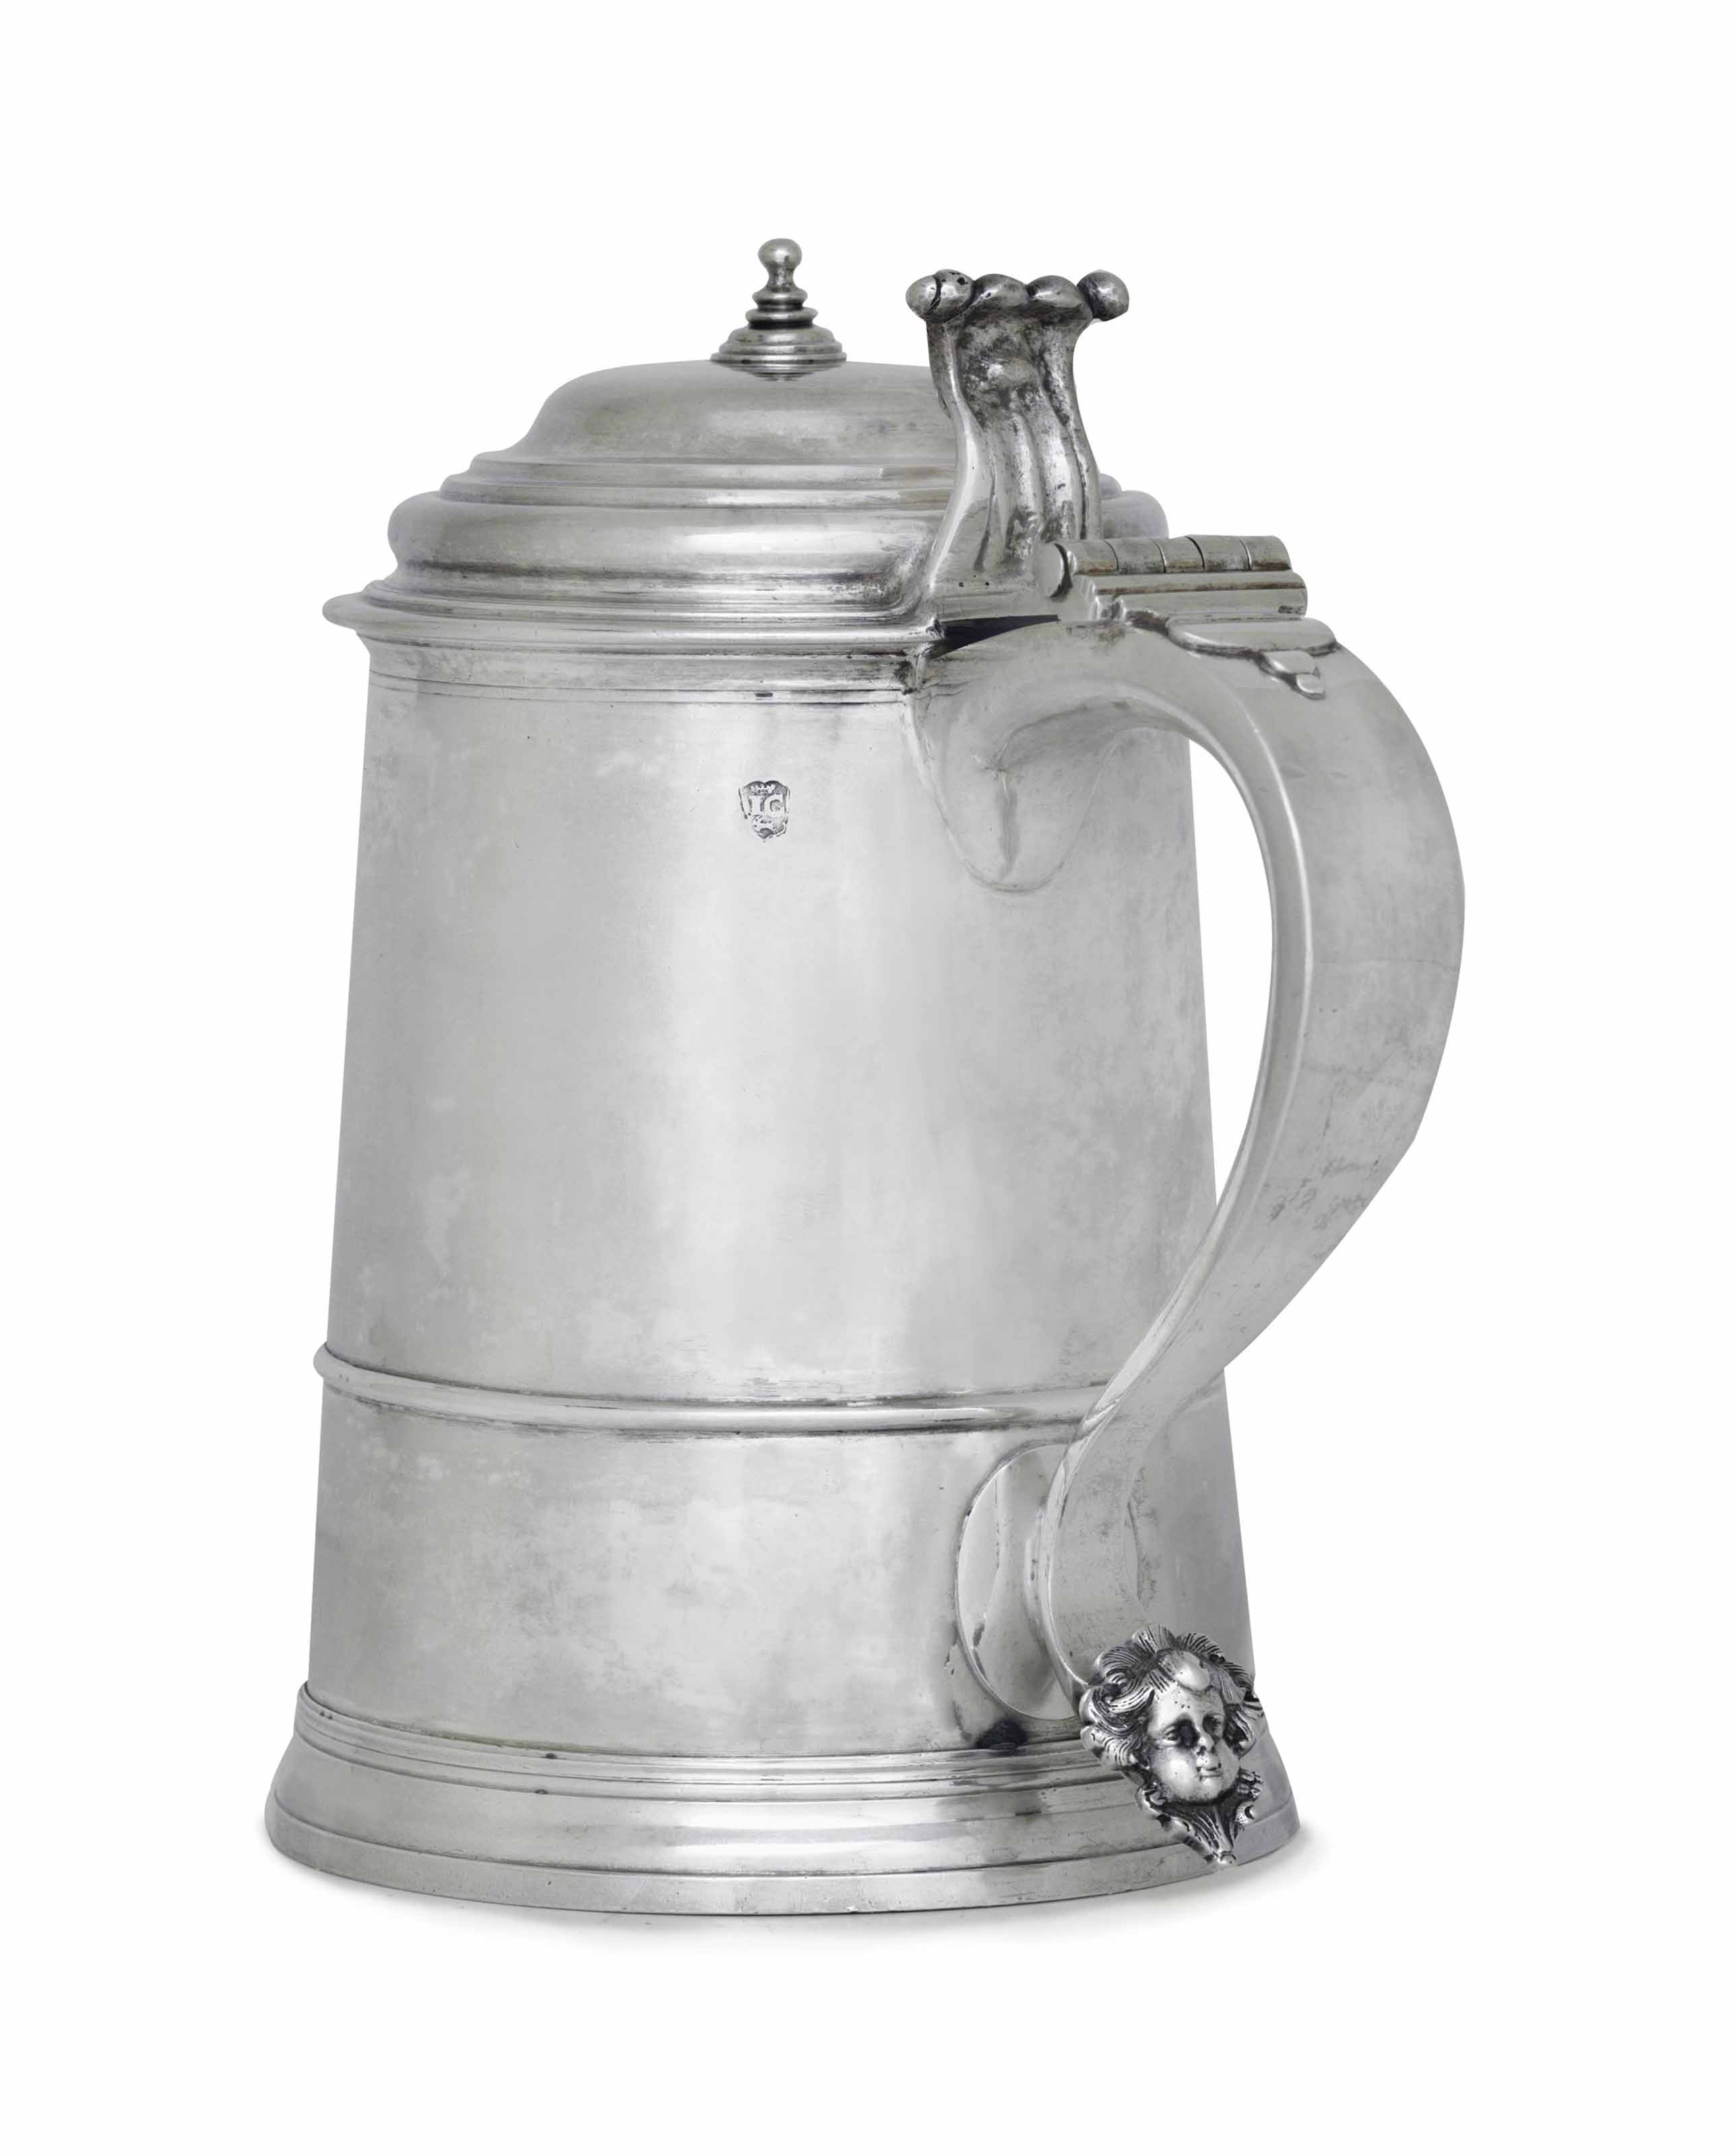 THE SAMUEL MORE SILVER TANKARD